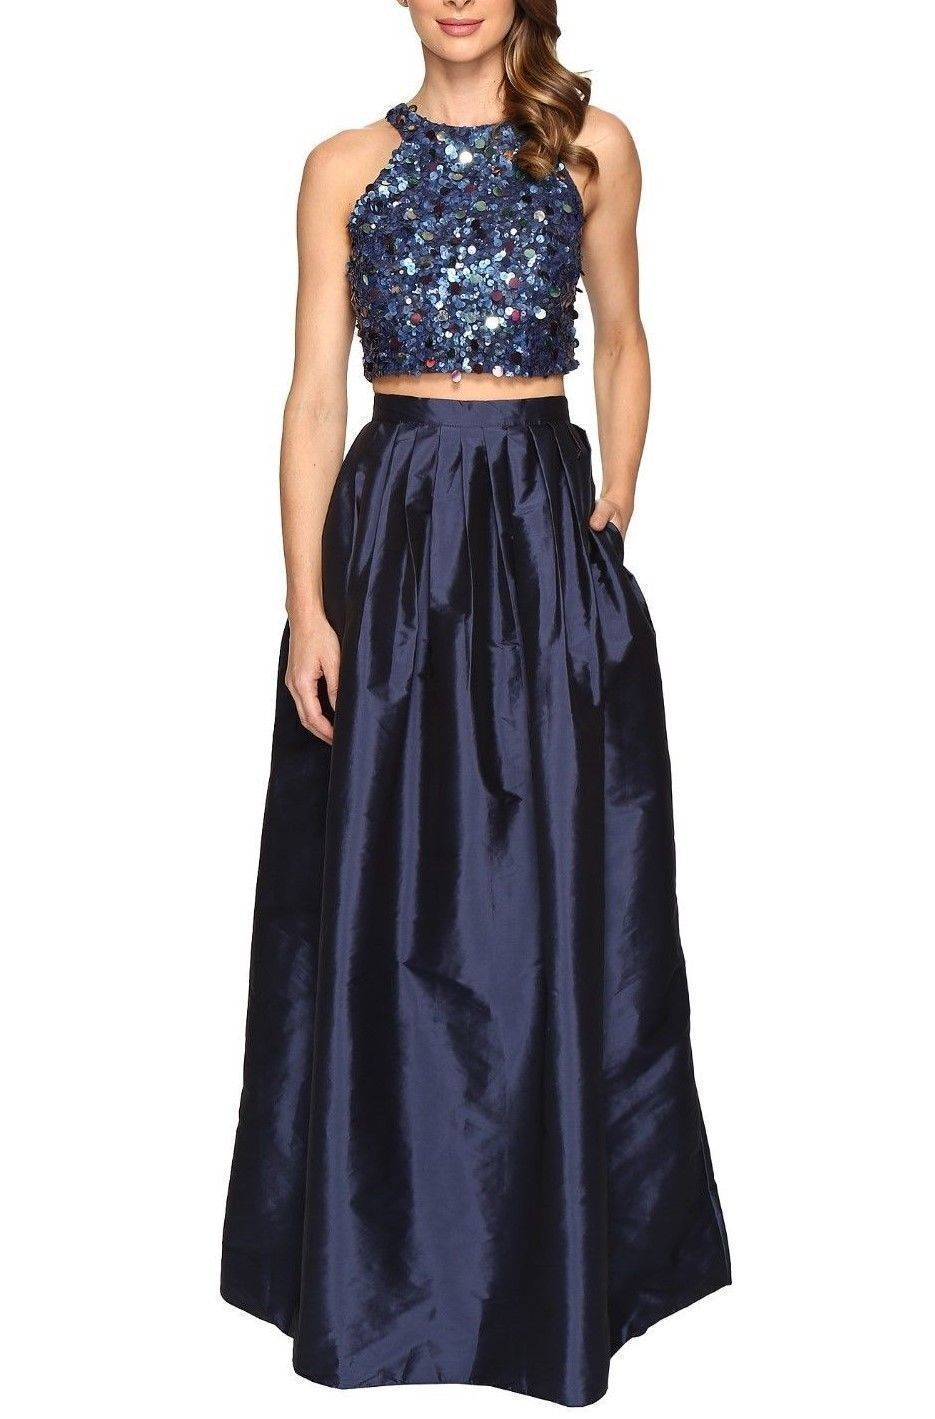 NWT  Adrianna Papell Embellished Two-Piece Ballgown [Größe 2]  e102